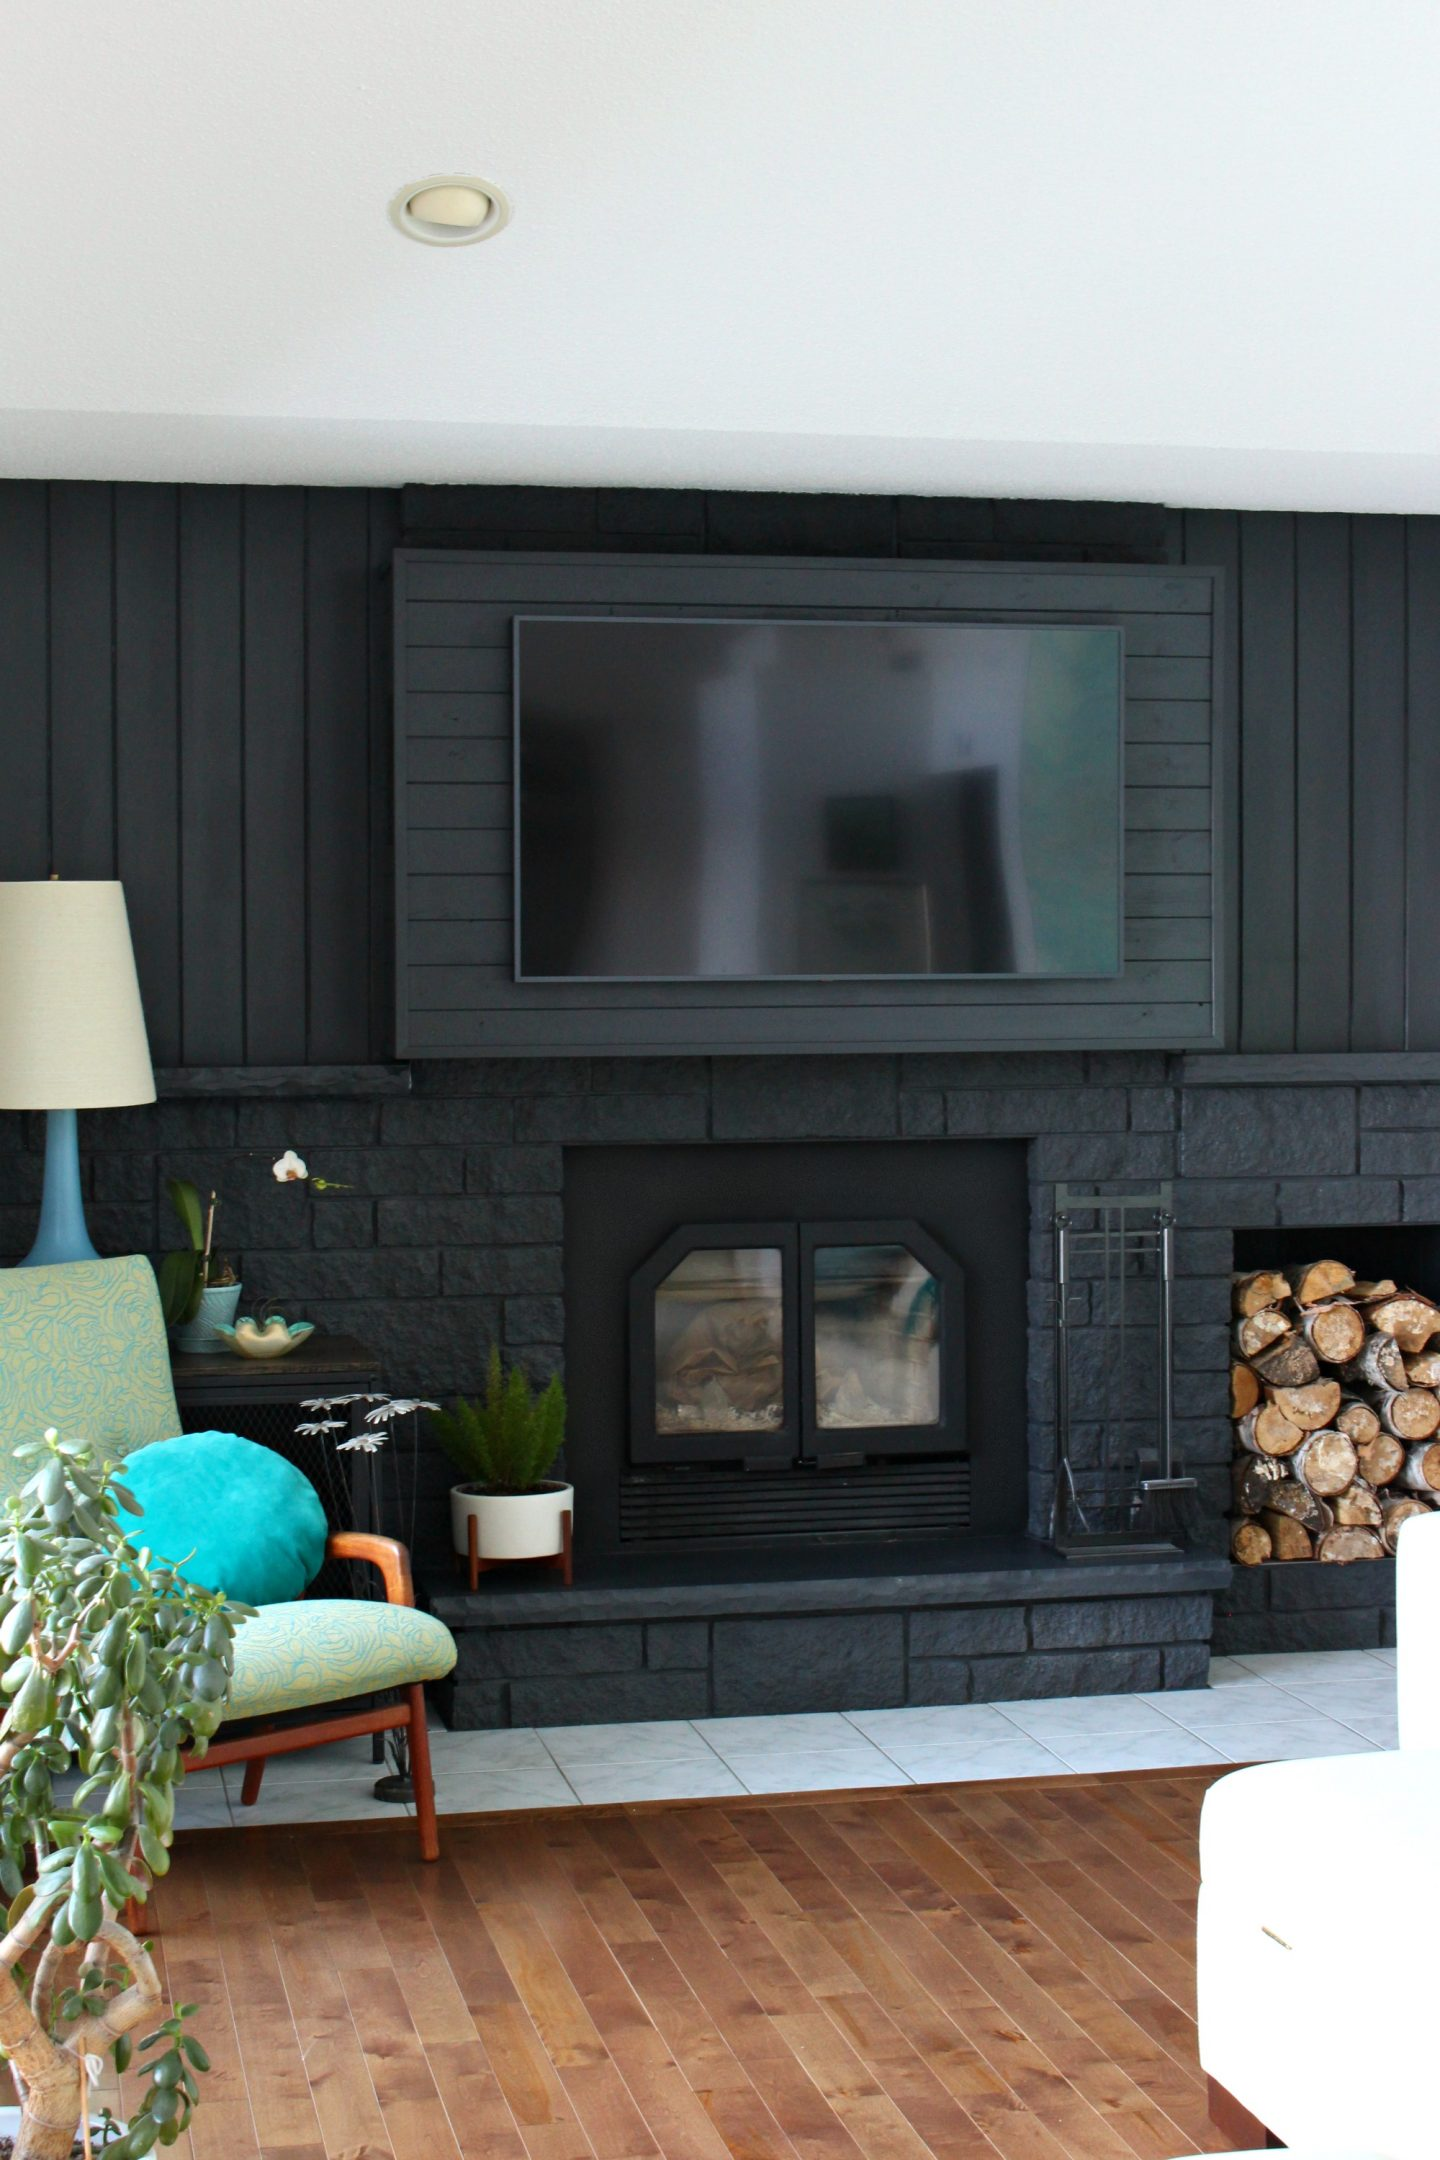 How High To Hang A Tv How To Build A Fireplace Bump Out To Hang A Tv Dans Le